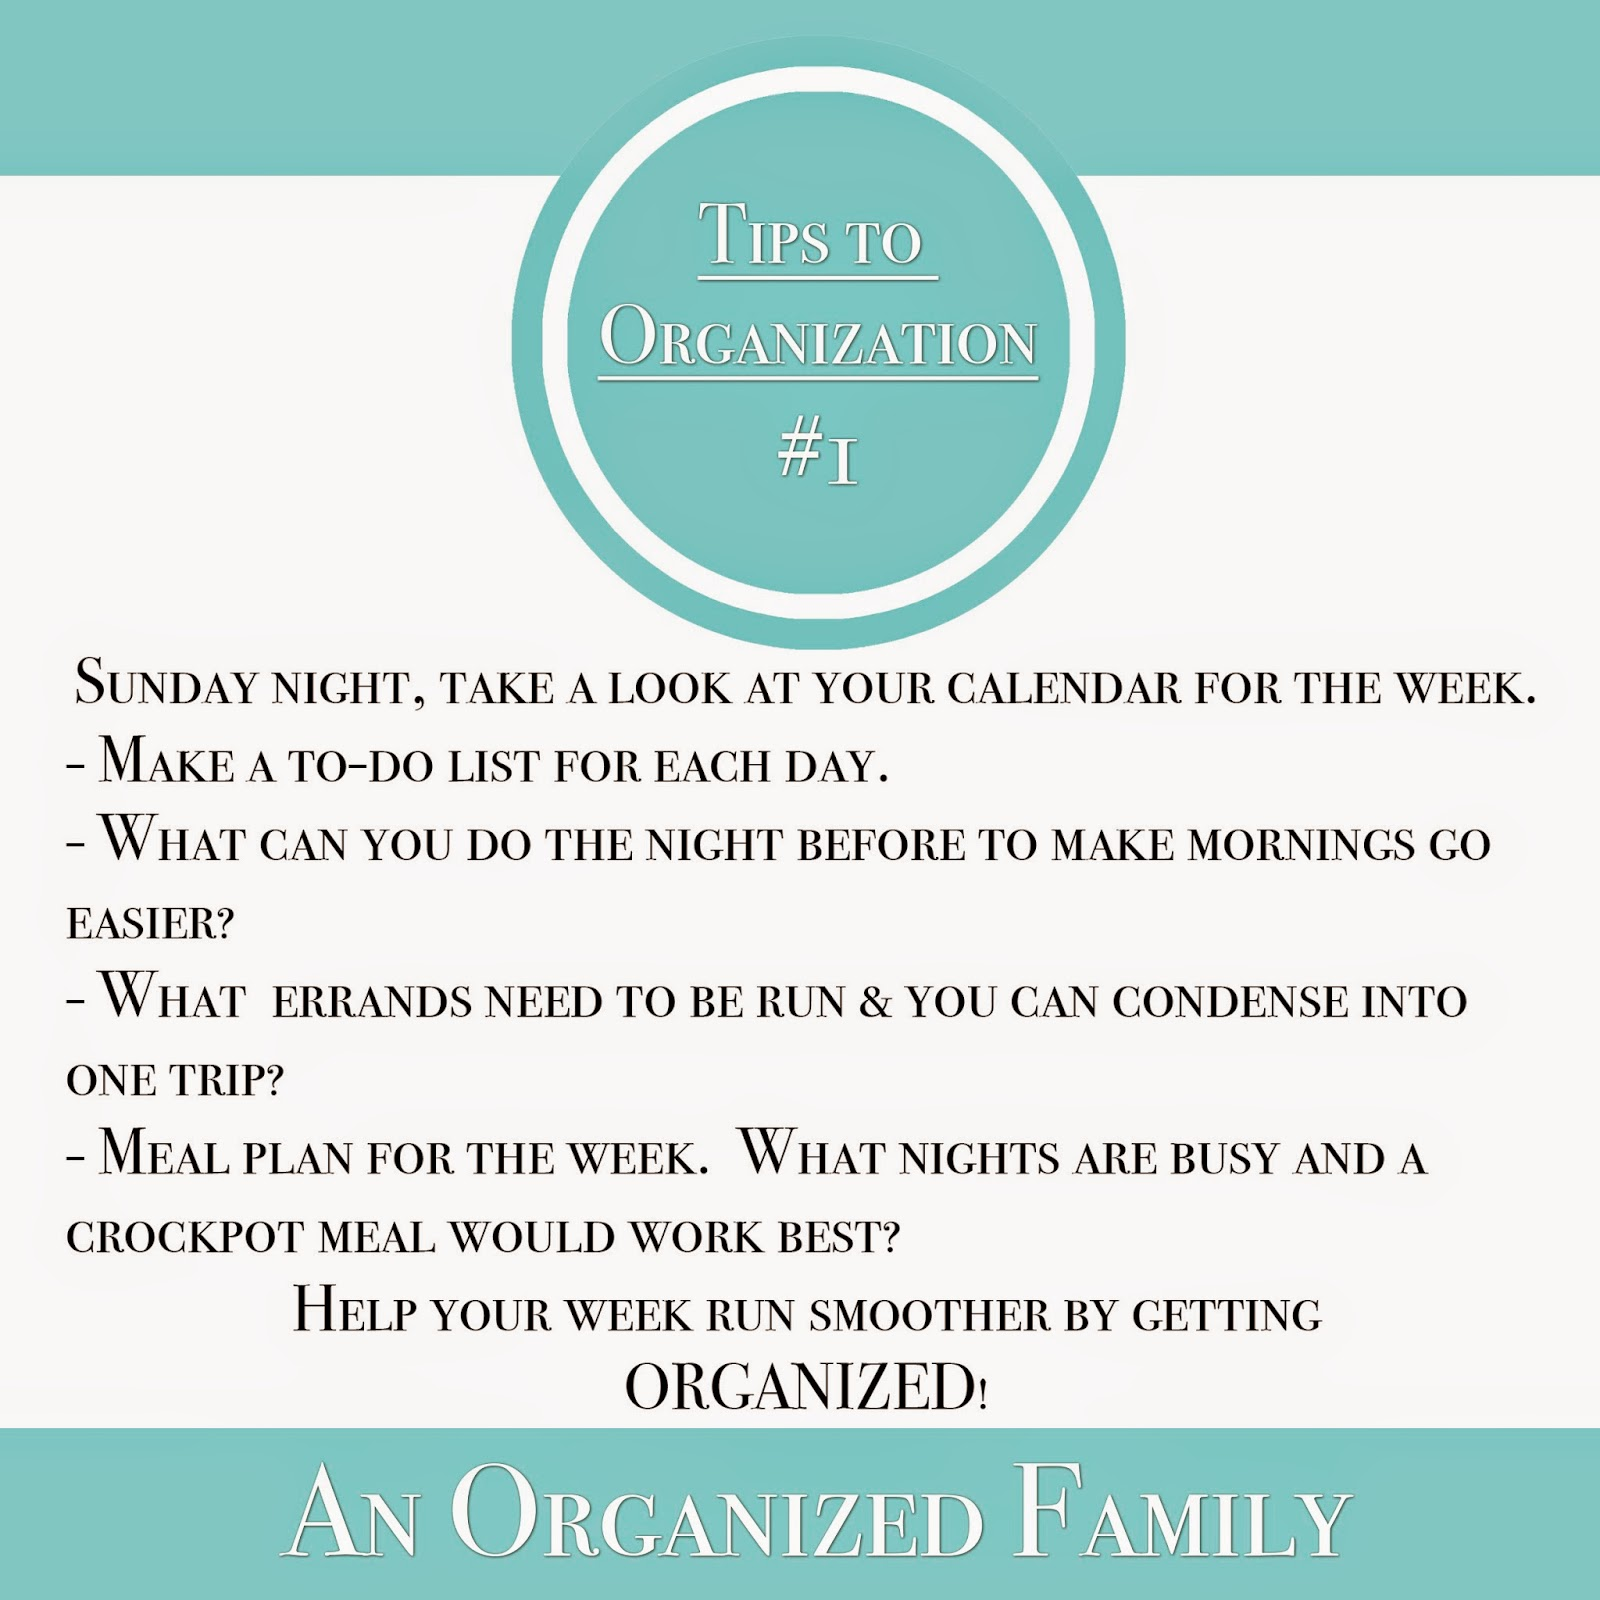 Tips to organization - Plan out your week